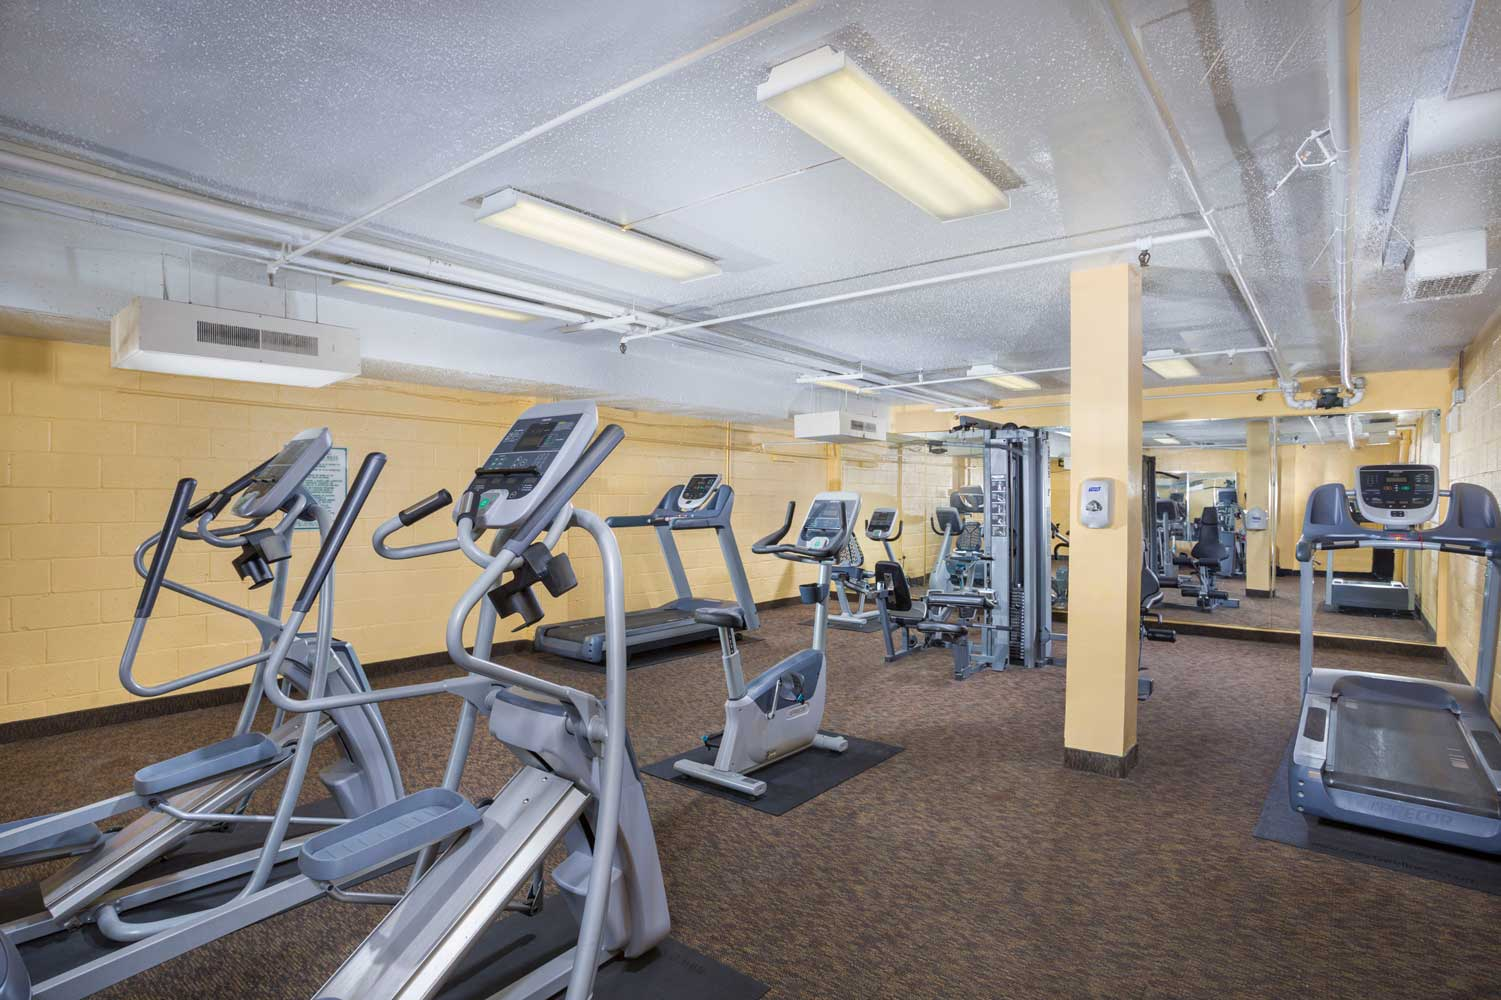 Fitness center at Top of the Hill Apartments in Temple Hills, MD